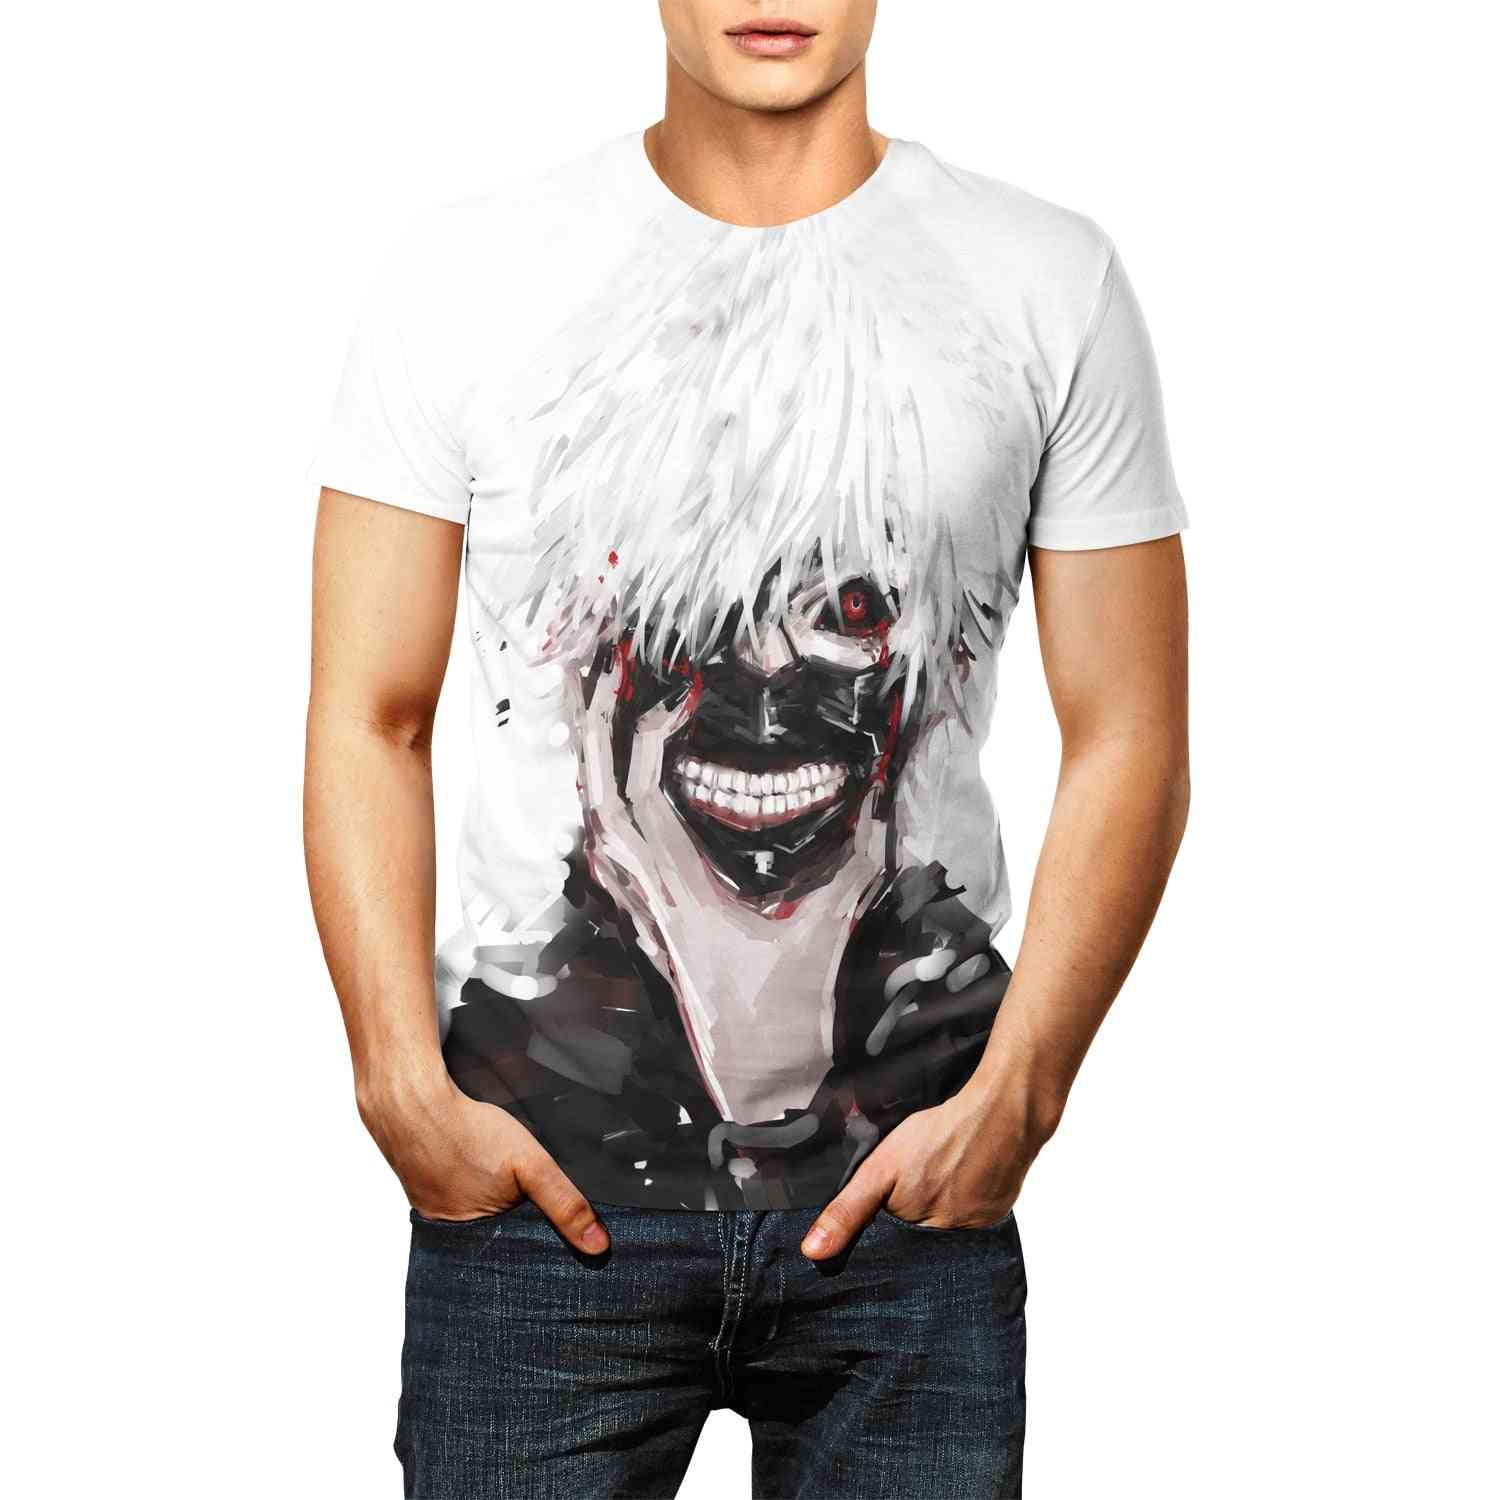 Anime Tokyo Ghoul T-shirt- Unisex Adult's Casual Clothing